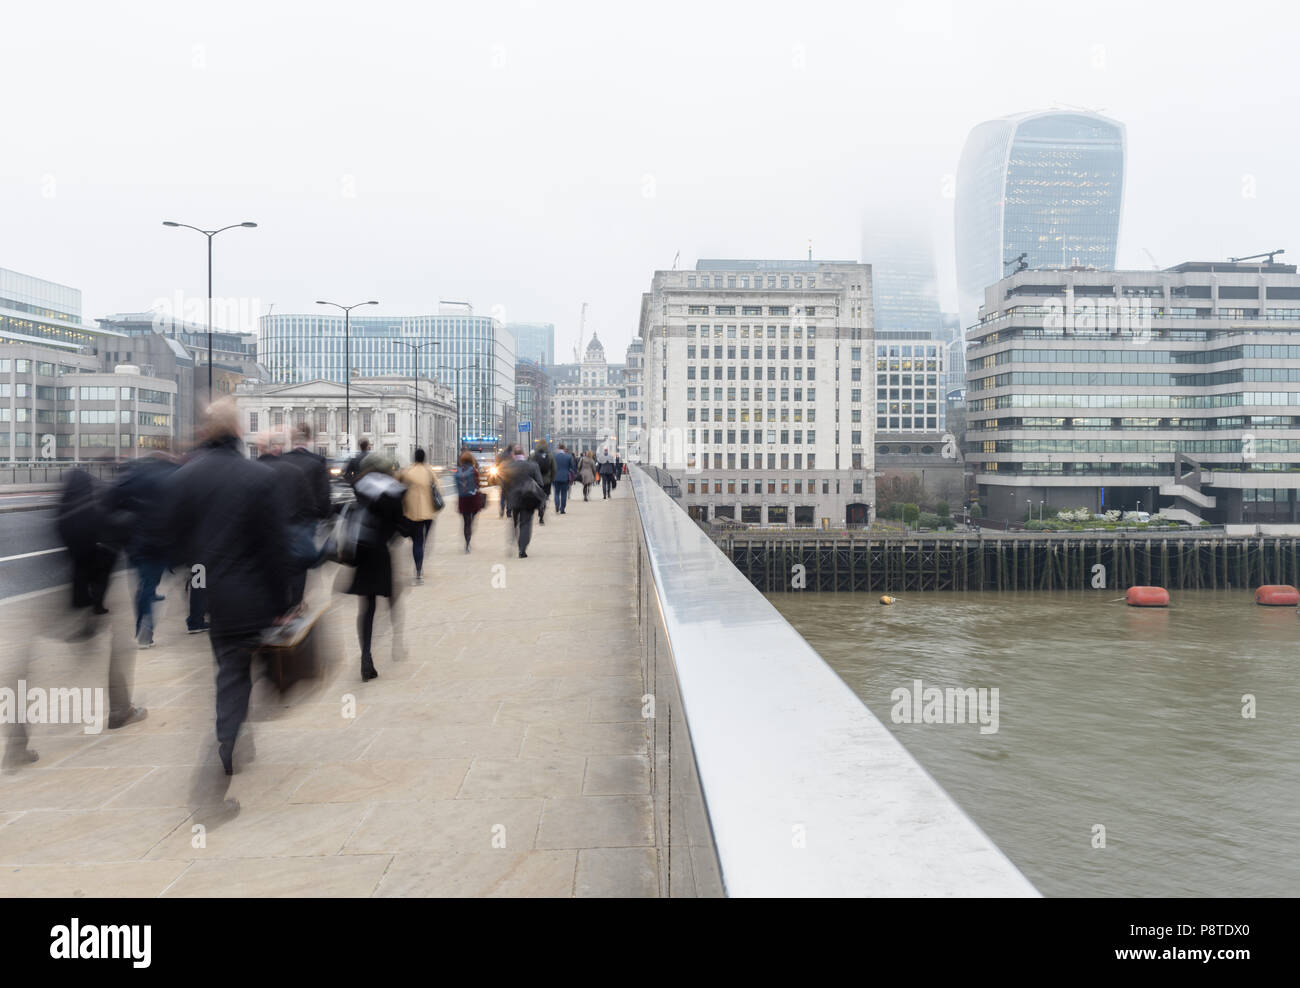 Monday morning commuters walking to work on London Bridge over the River Thames and towards the City and Walkie Talkie building on a misty day - Stock Image